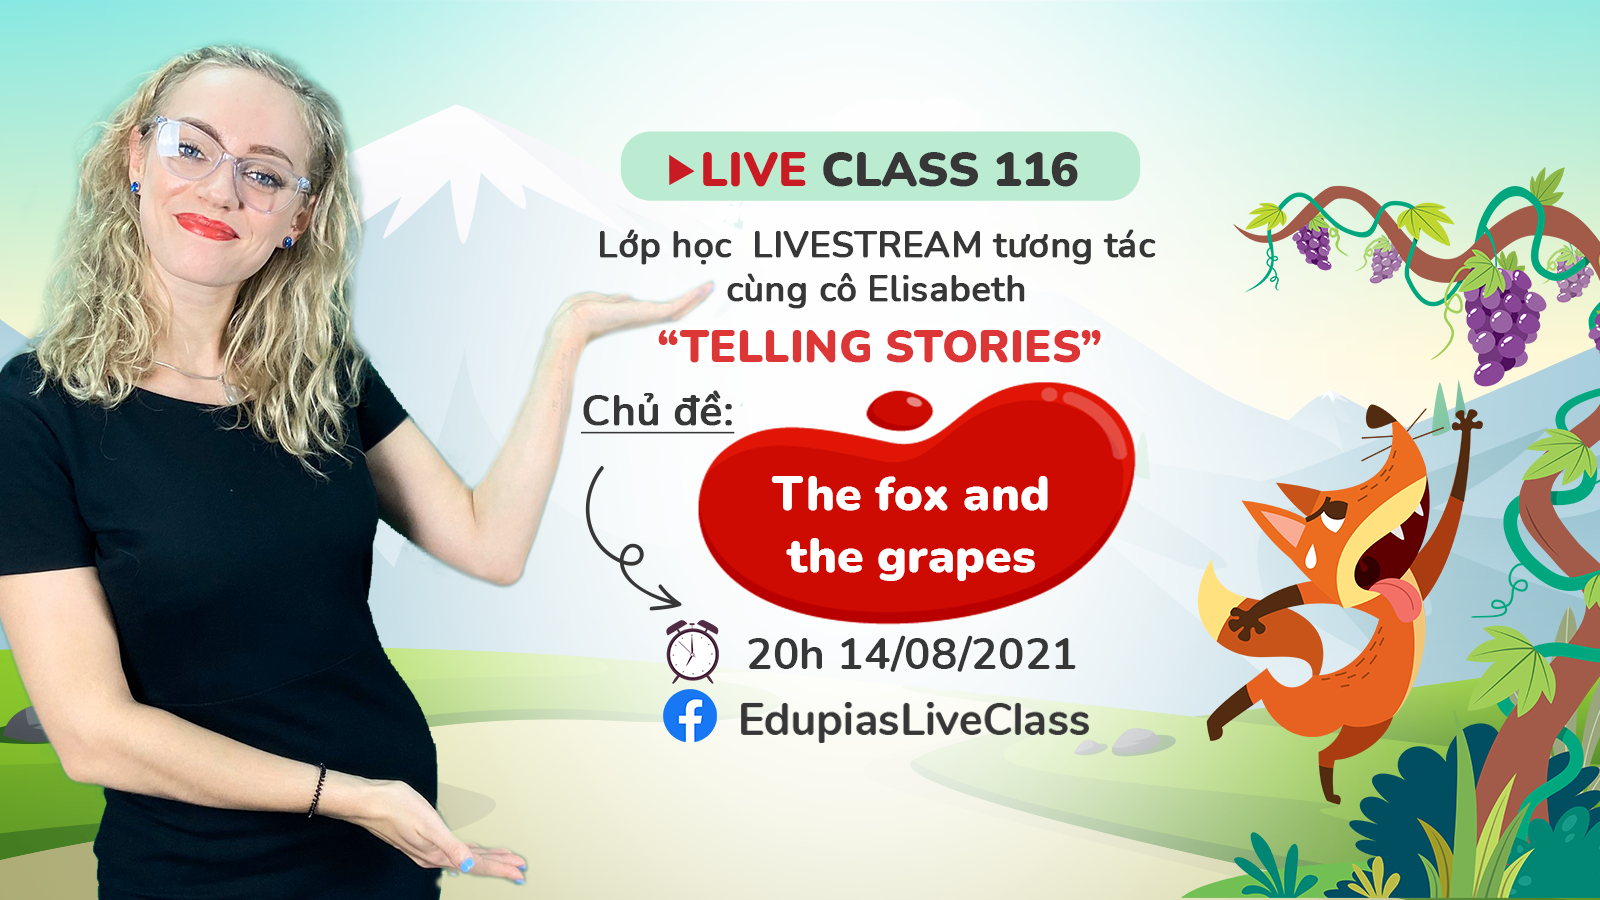 Live class tuần 116 - Chủ đề: The fox and the grapes